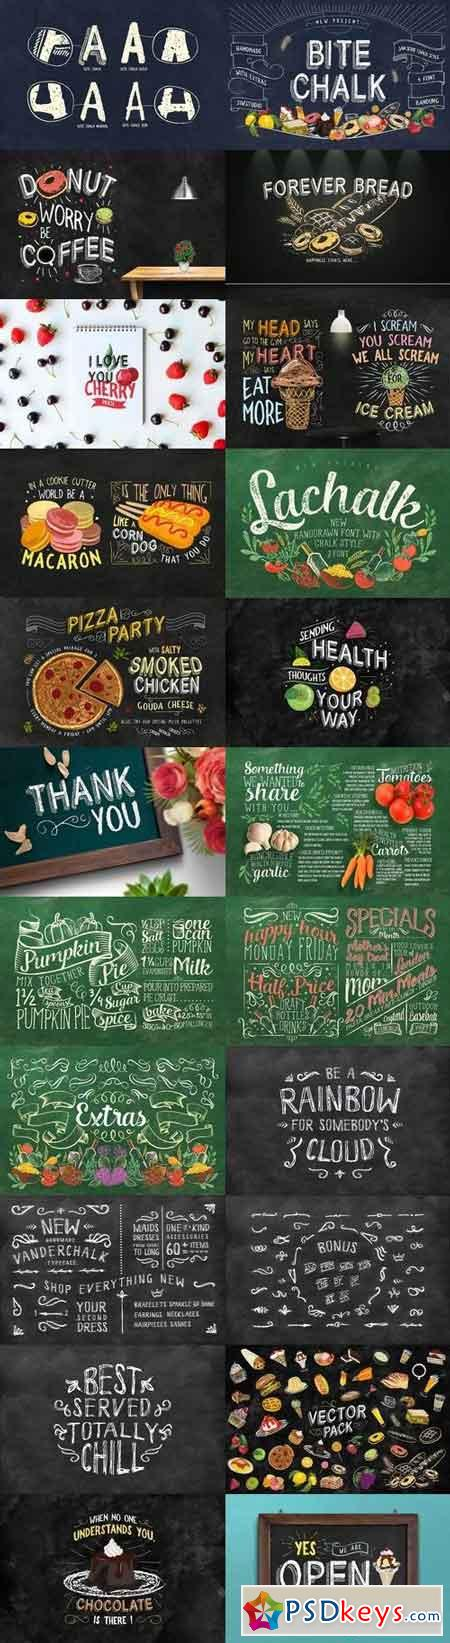 3 IN 1 Chalk Fonts Bundle + Extras 1797560